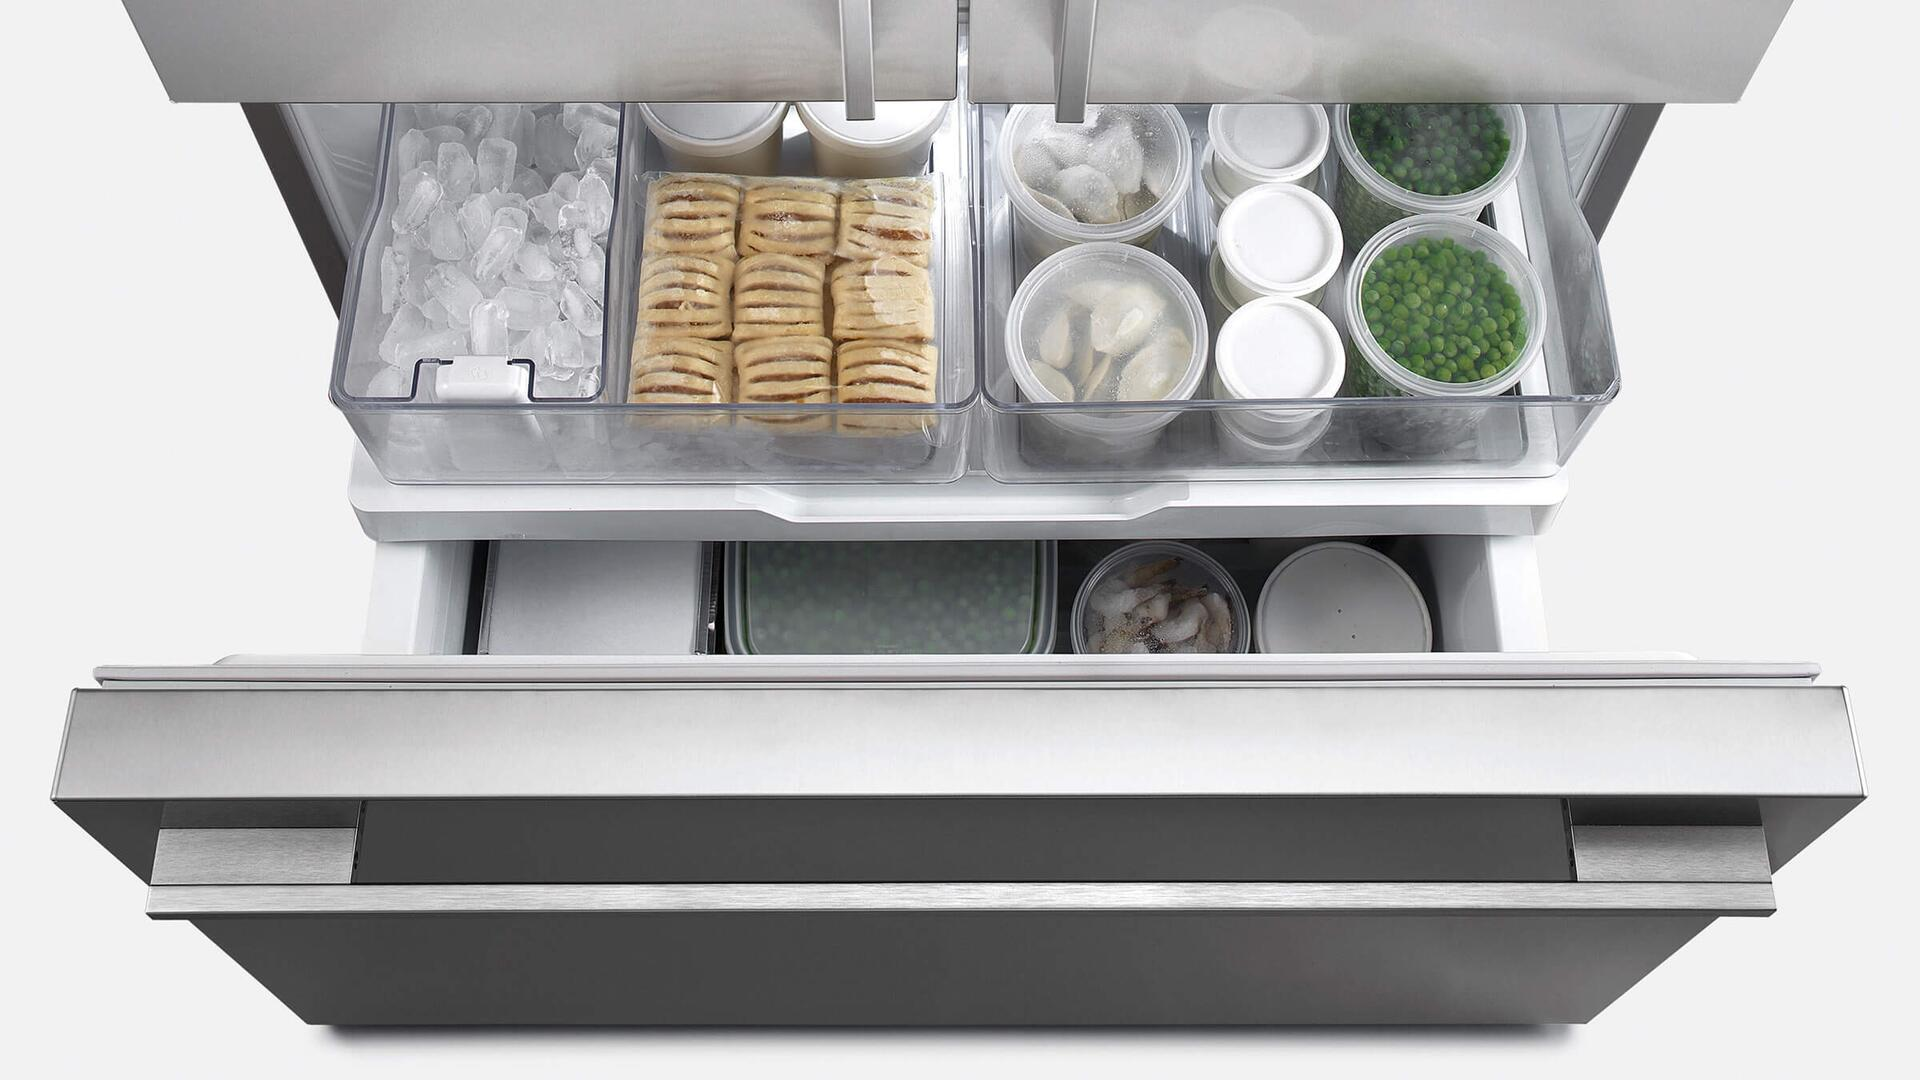 Fisher Paykel Rf170adusx4 31 Inch Counter Depth French